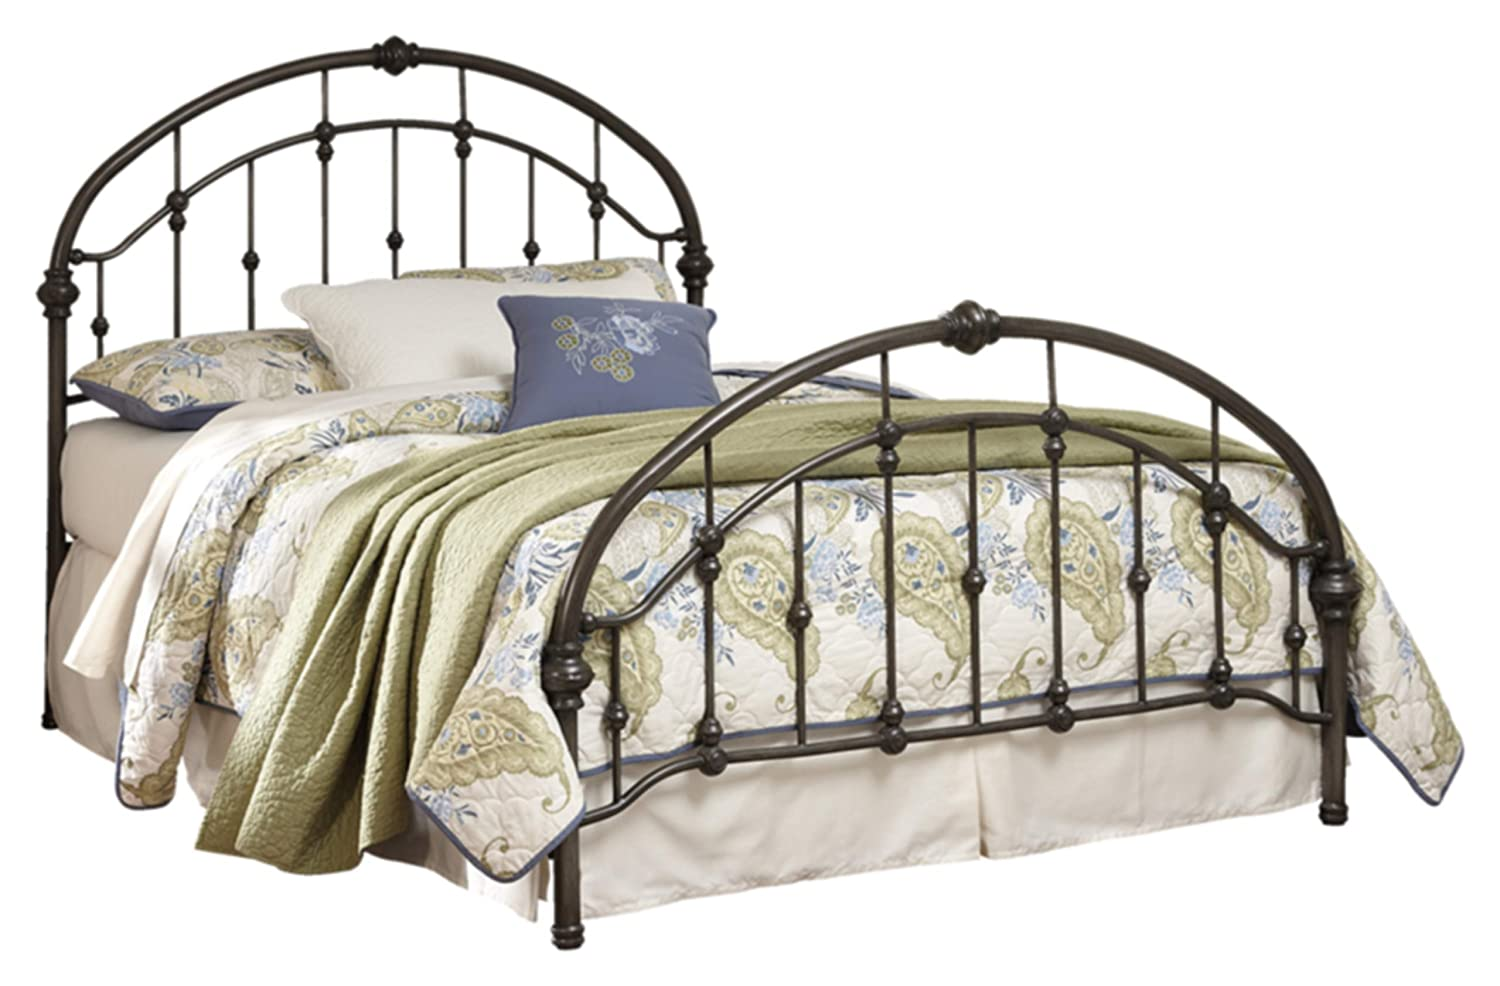 Ashley Furniture Signature Design - Nashburg Metal Headboard and Footboard with Rails - King Size - Component Piece - Vintage Casual - Bronze Finish B280-182